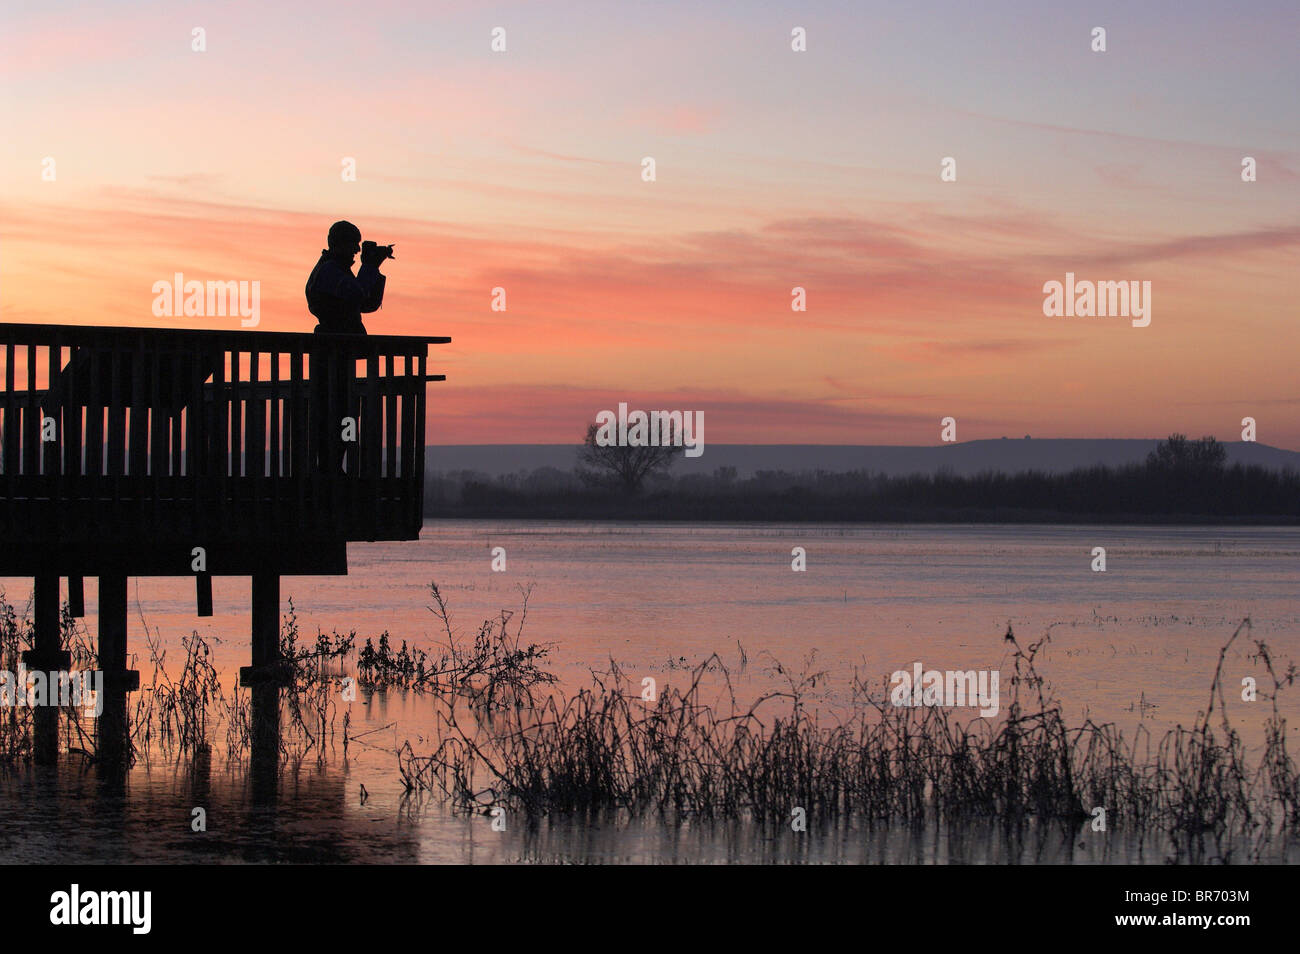 Person bird watching at dawn, Bosque del Apache National Wildlife Refuge, New Mexico, USA - Stock Image